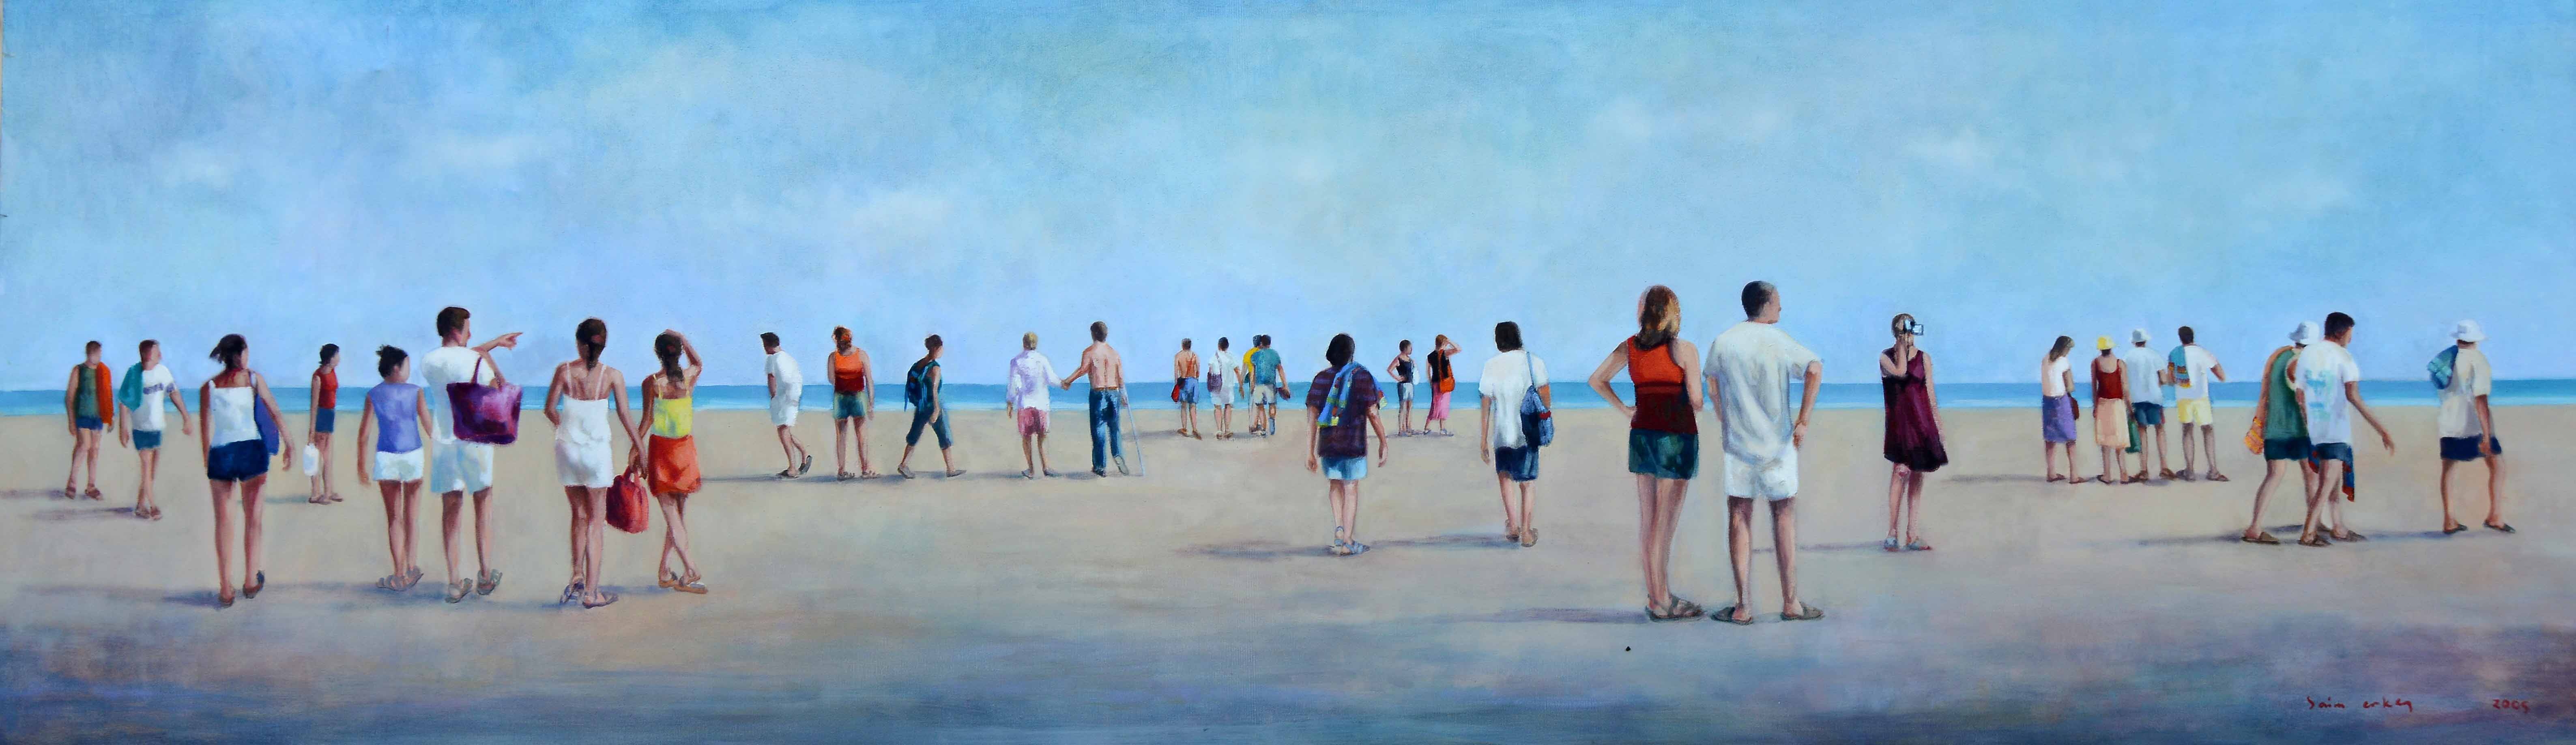 İsimsiz- Untitled, 2005, Tuval üzerine yağlıboya- Oil on canvas, 60x200 cm